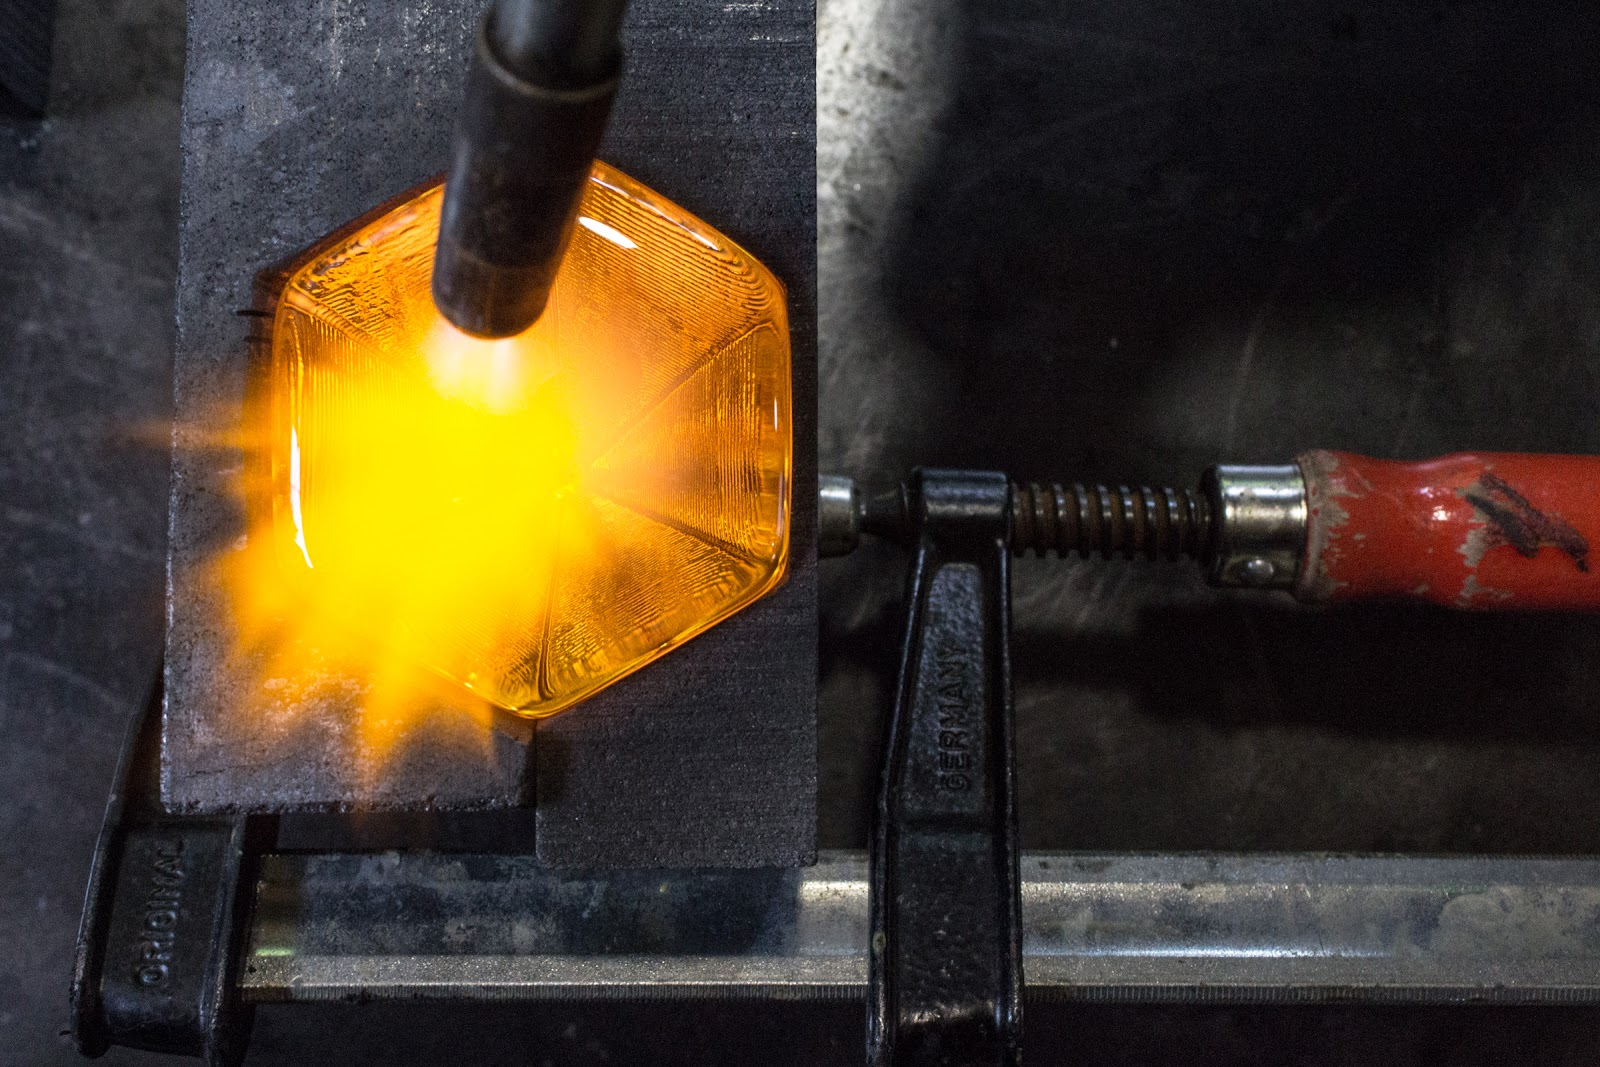 Hot casting in CNC milled graphite - Fred Kahl (photo courtesy of Pilchuck Glass School)